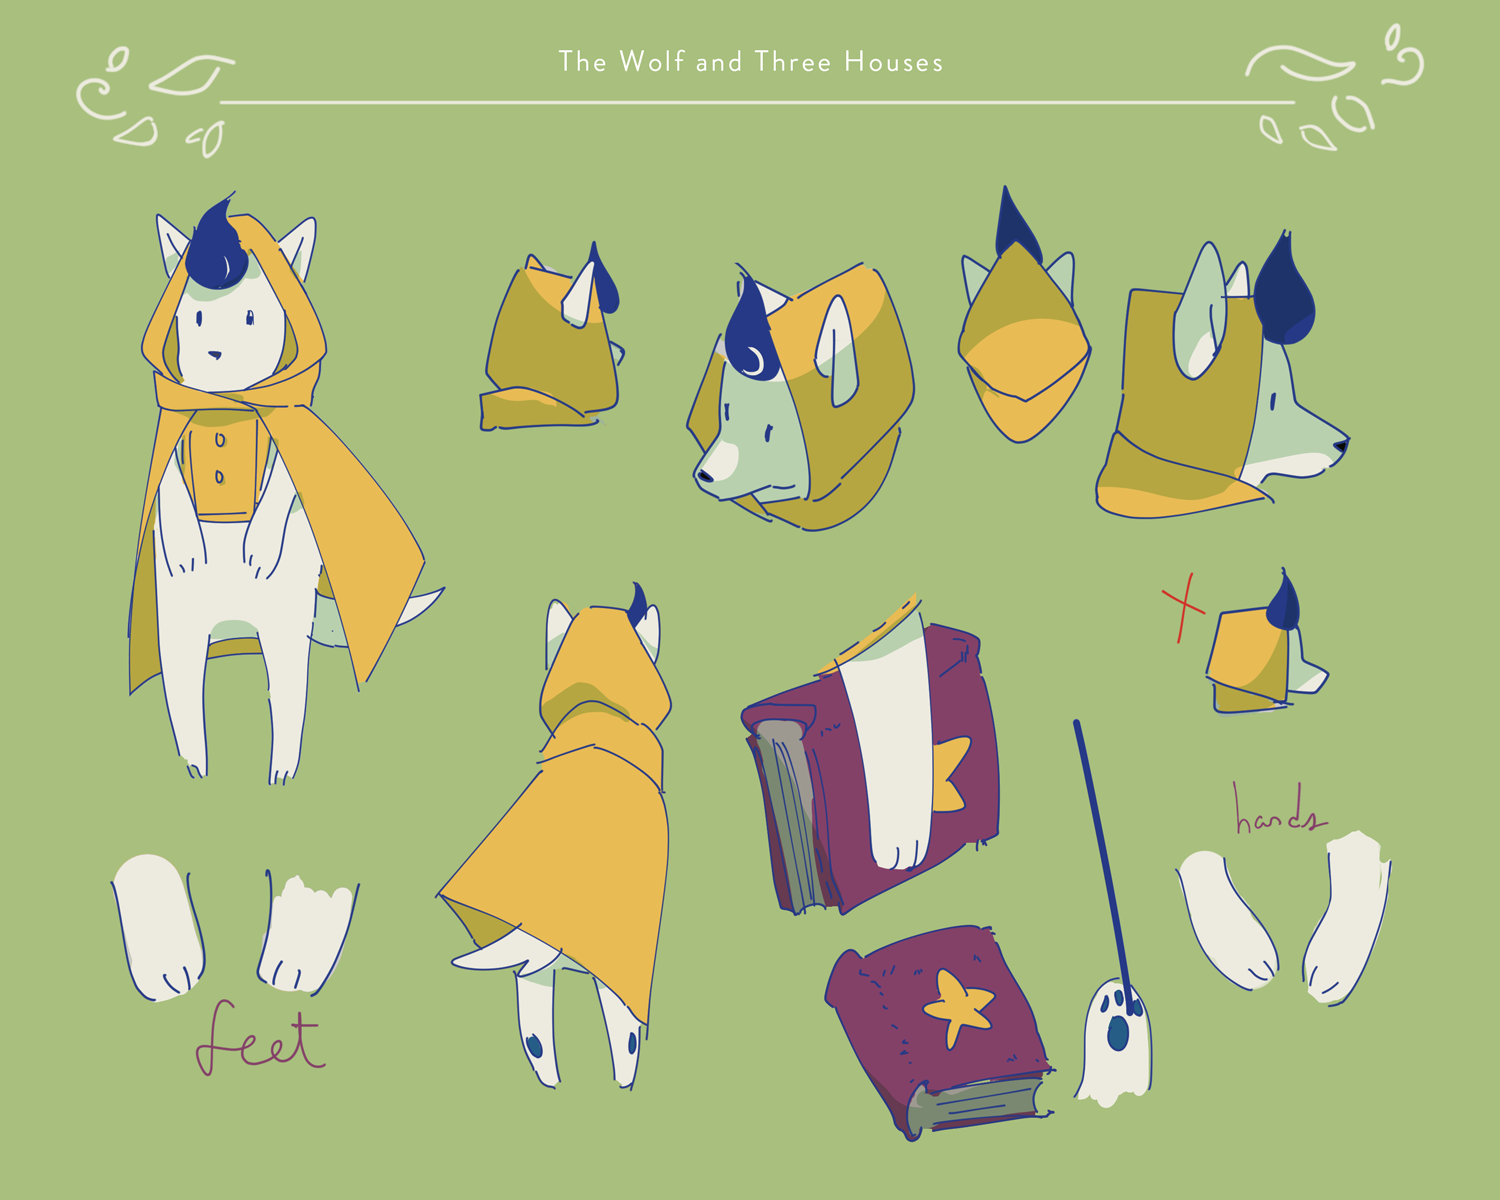 wolf-character-sheet-2.png